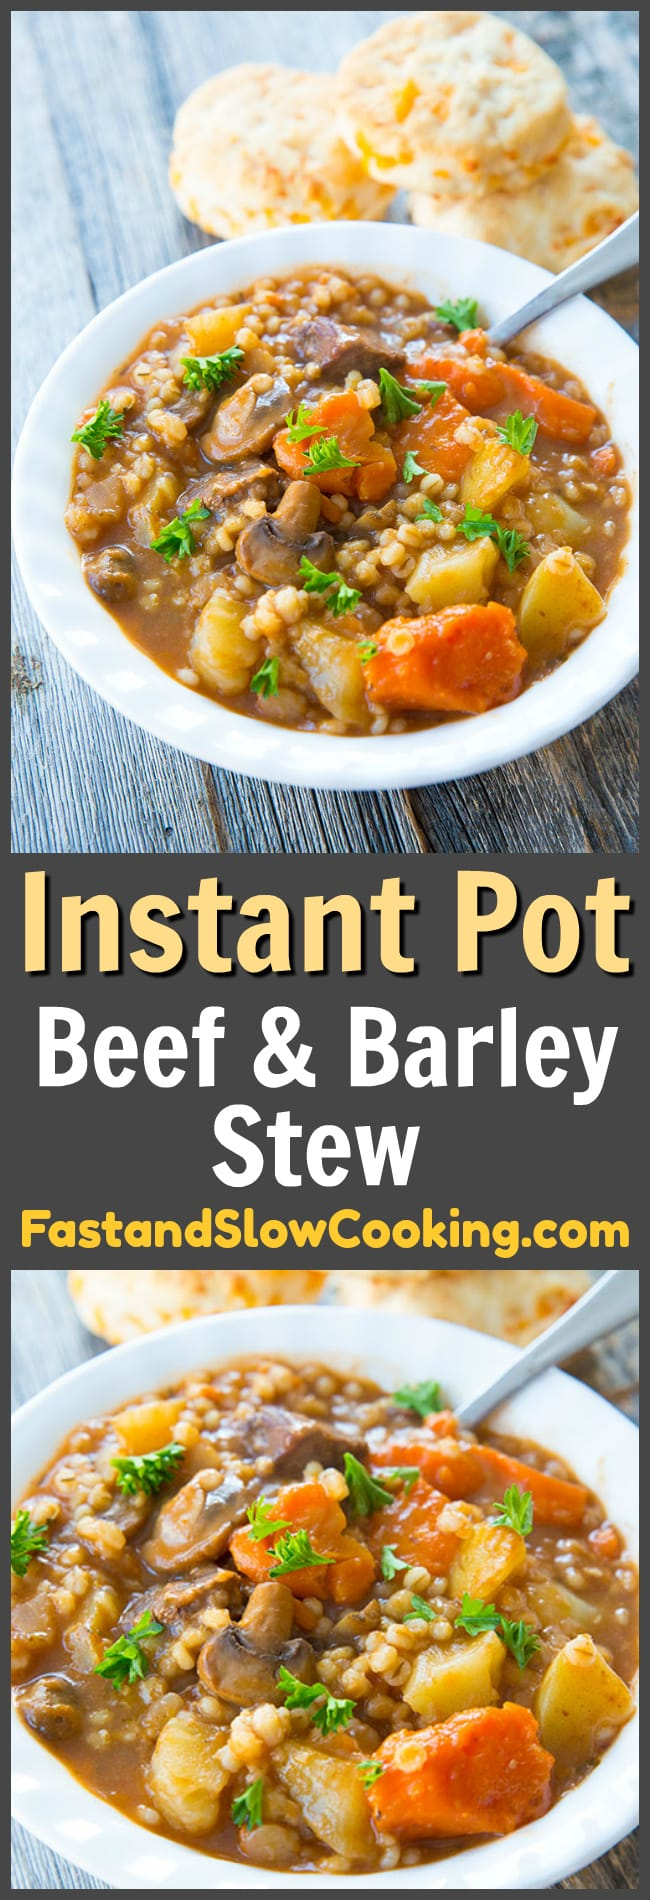 This Instant Pot Beef and Barley stew is the perfect comfort food! Thanks to pressure cooking, the barley cooks up faster - meaning you get dinner on the table in no time at all! #instantpot #stew #soup #pressurecooker #pressurecooking #recipe